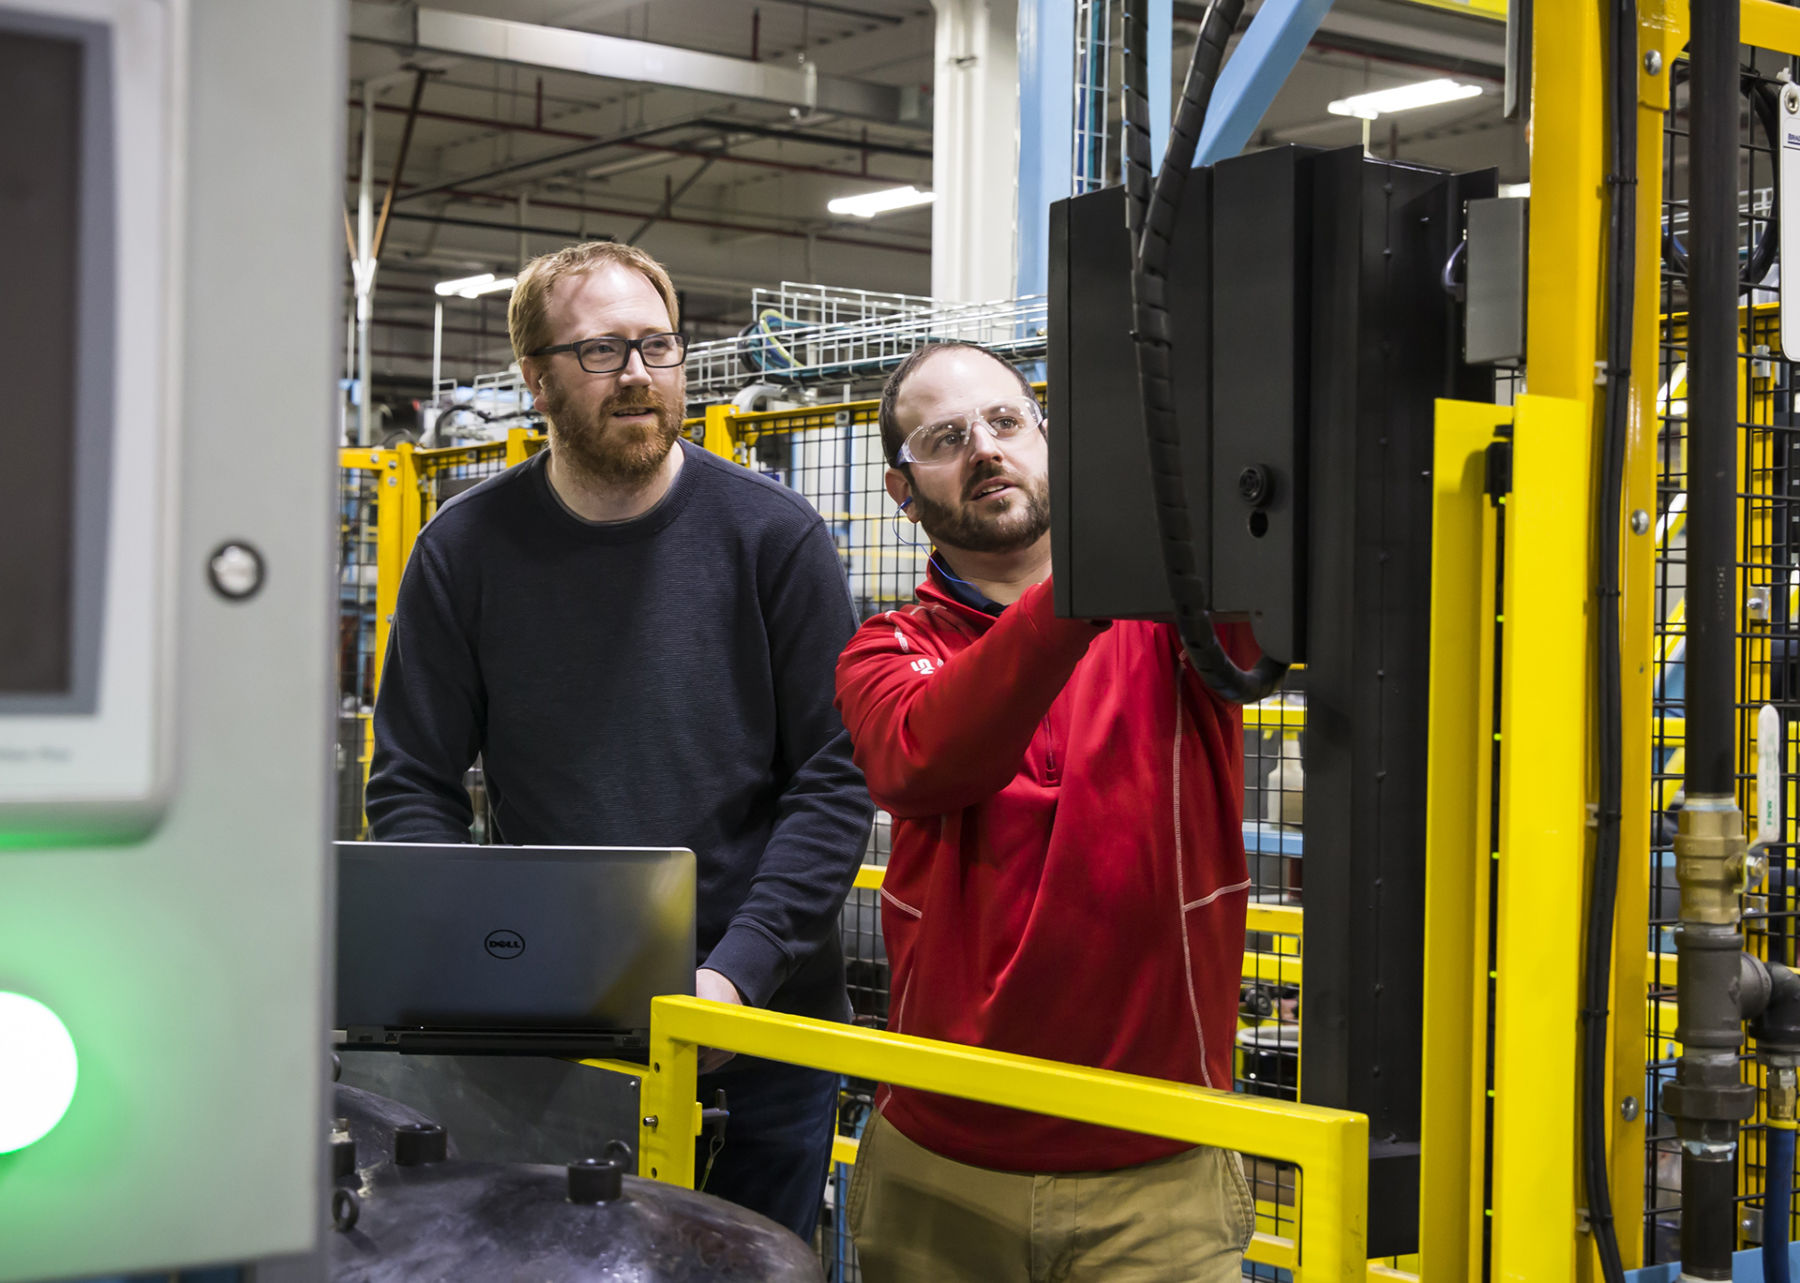 industrial engineers working at a facility